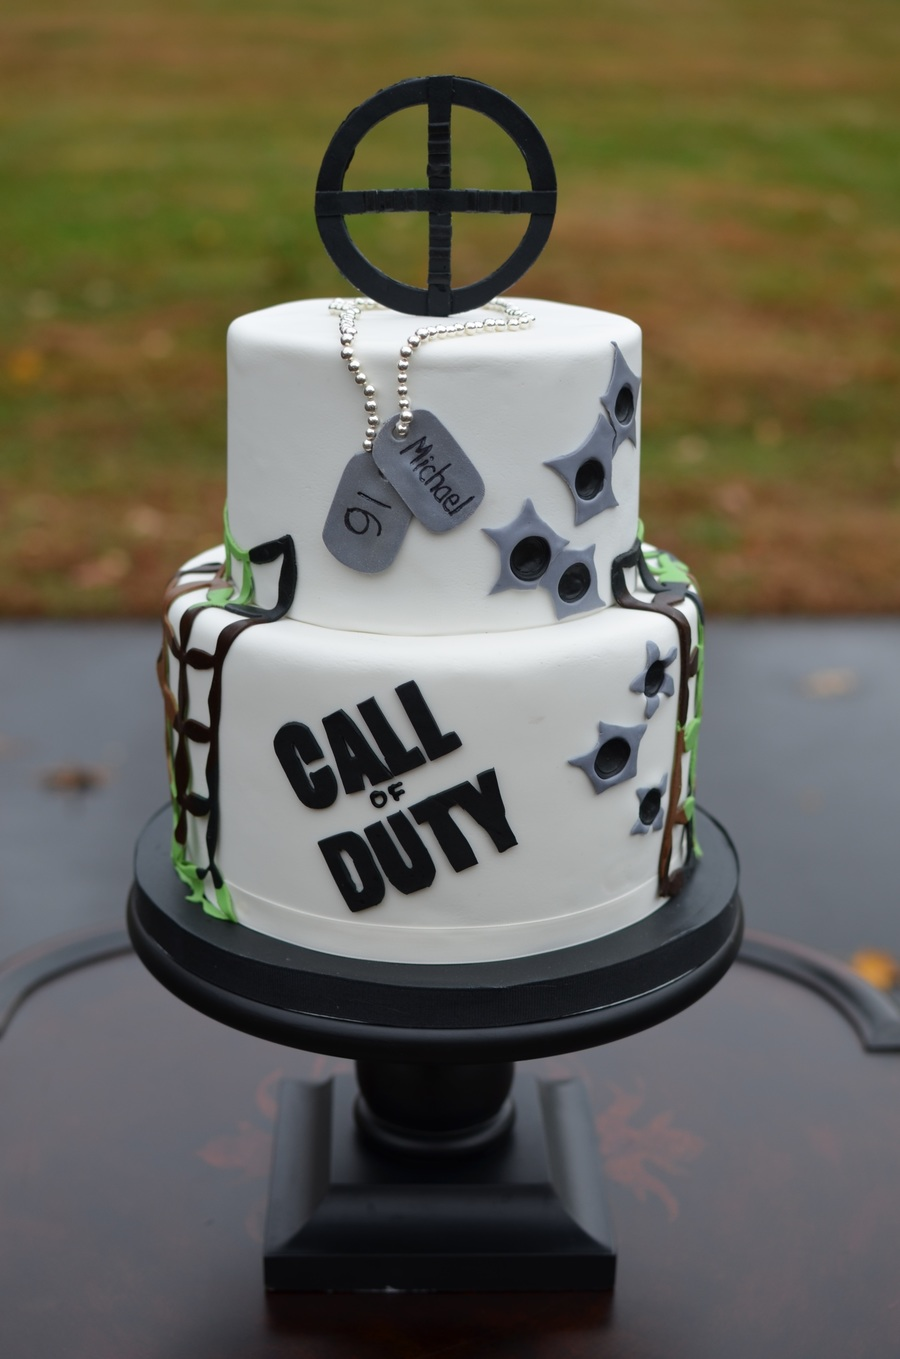 Swell Call Of Duty Birthday Cake Cakecentral Com Funny Birthday Cards Online Inifodamsfinfo